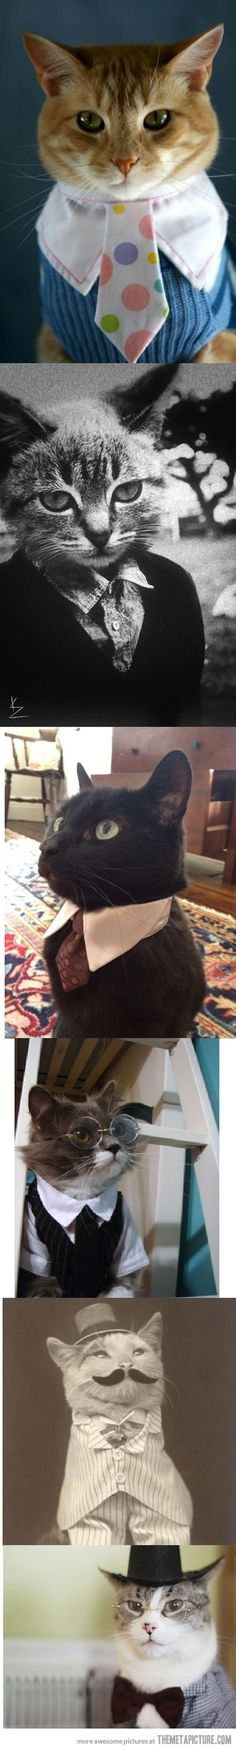 Classy cats (maybe, but they don't look happy)